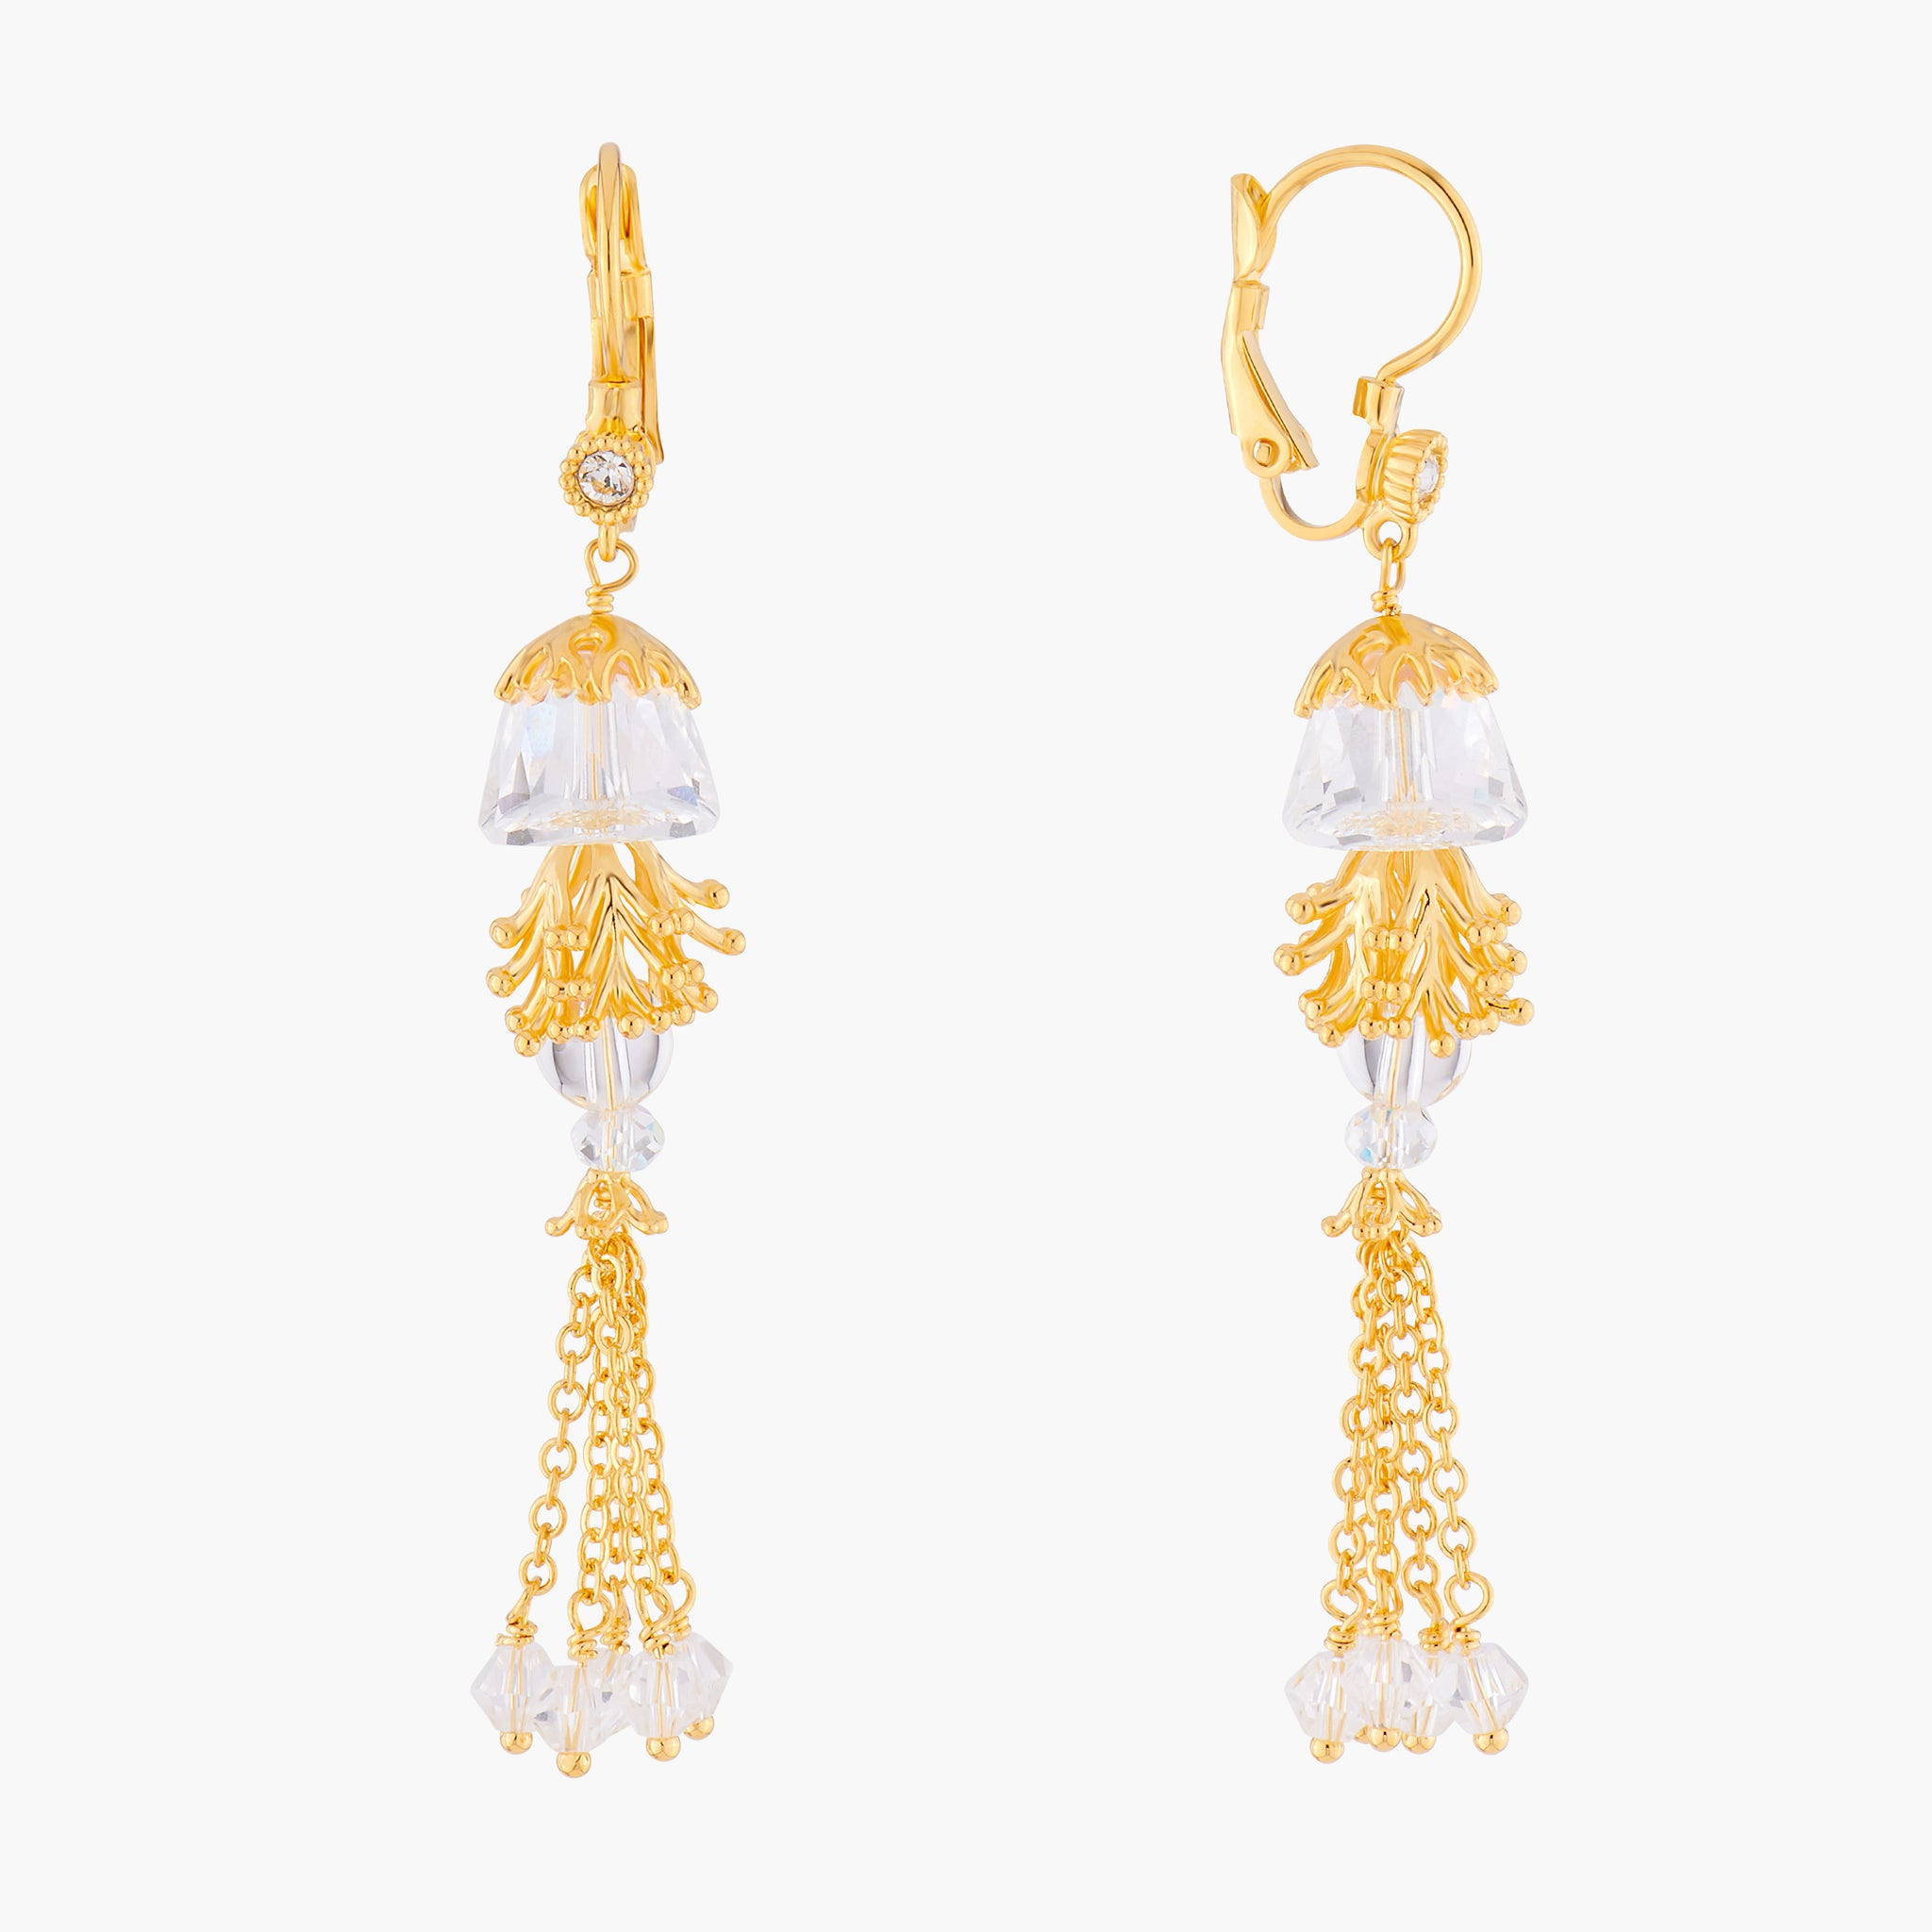 Jellyfish Dormeuses Earrings